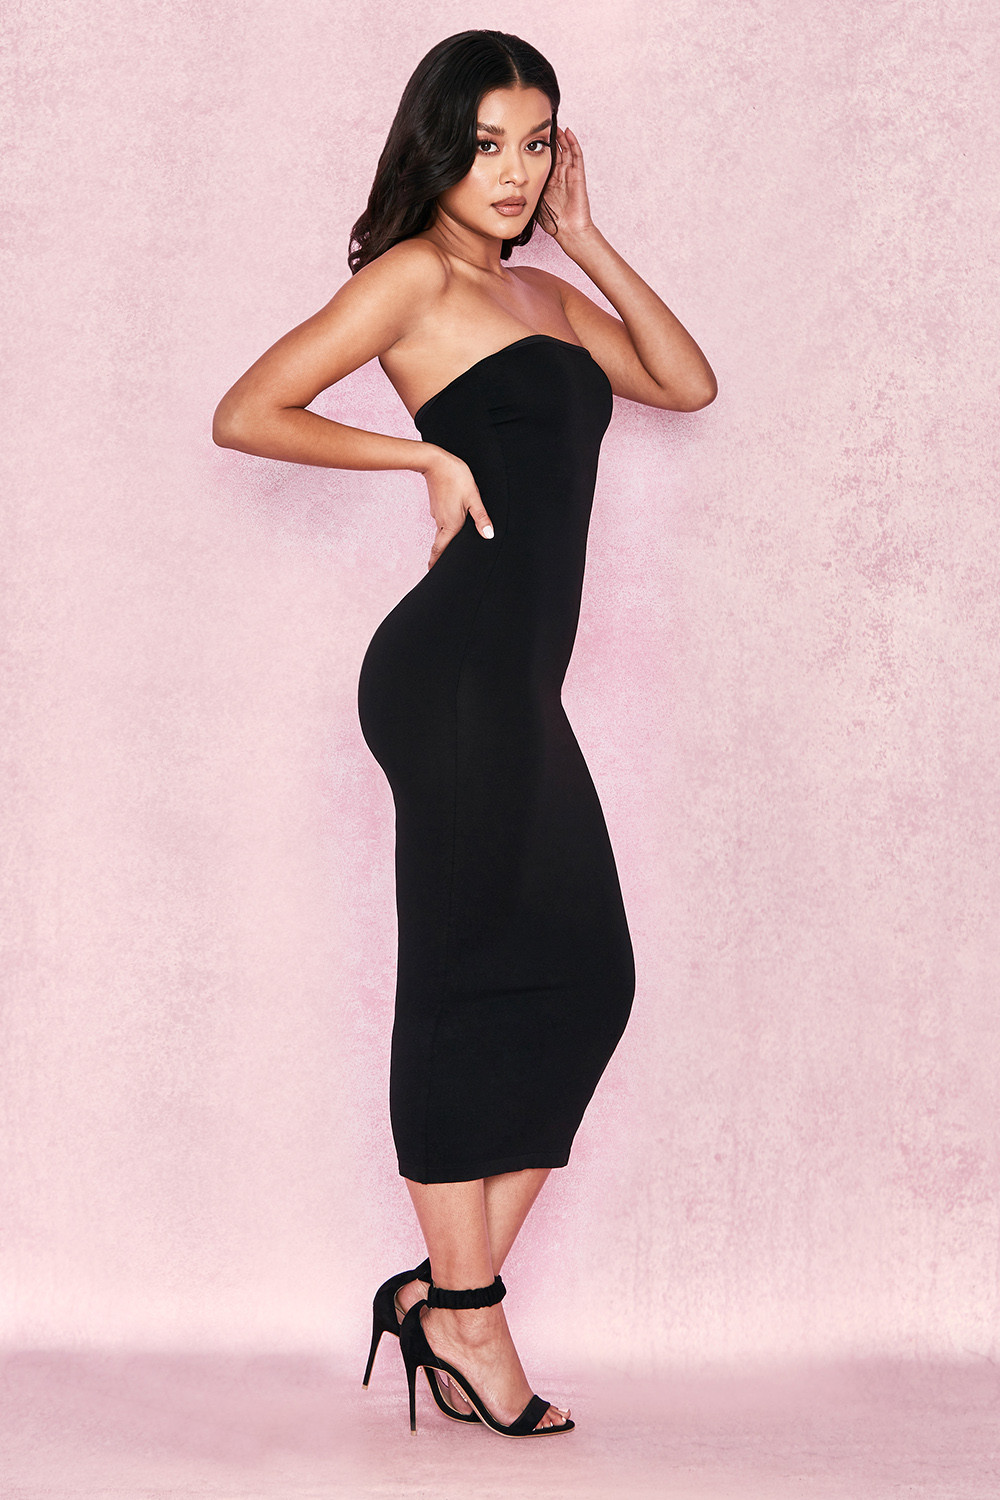 a60c9f0f639 Clothing   Bodycon Dresses    Luciana  Black Strapless Seamless Knit ...